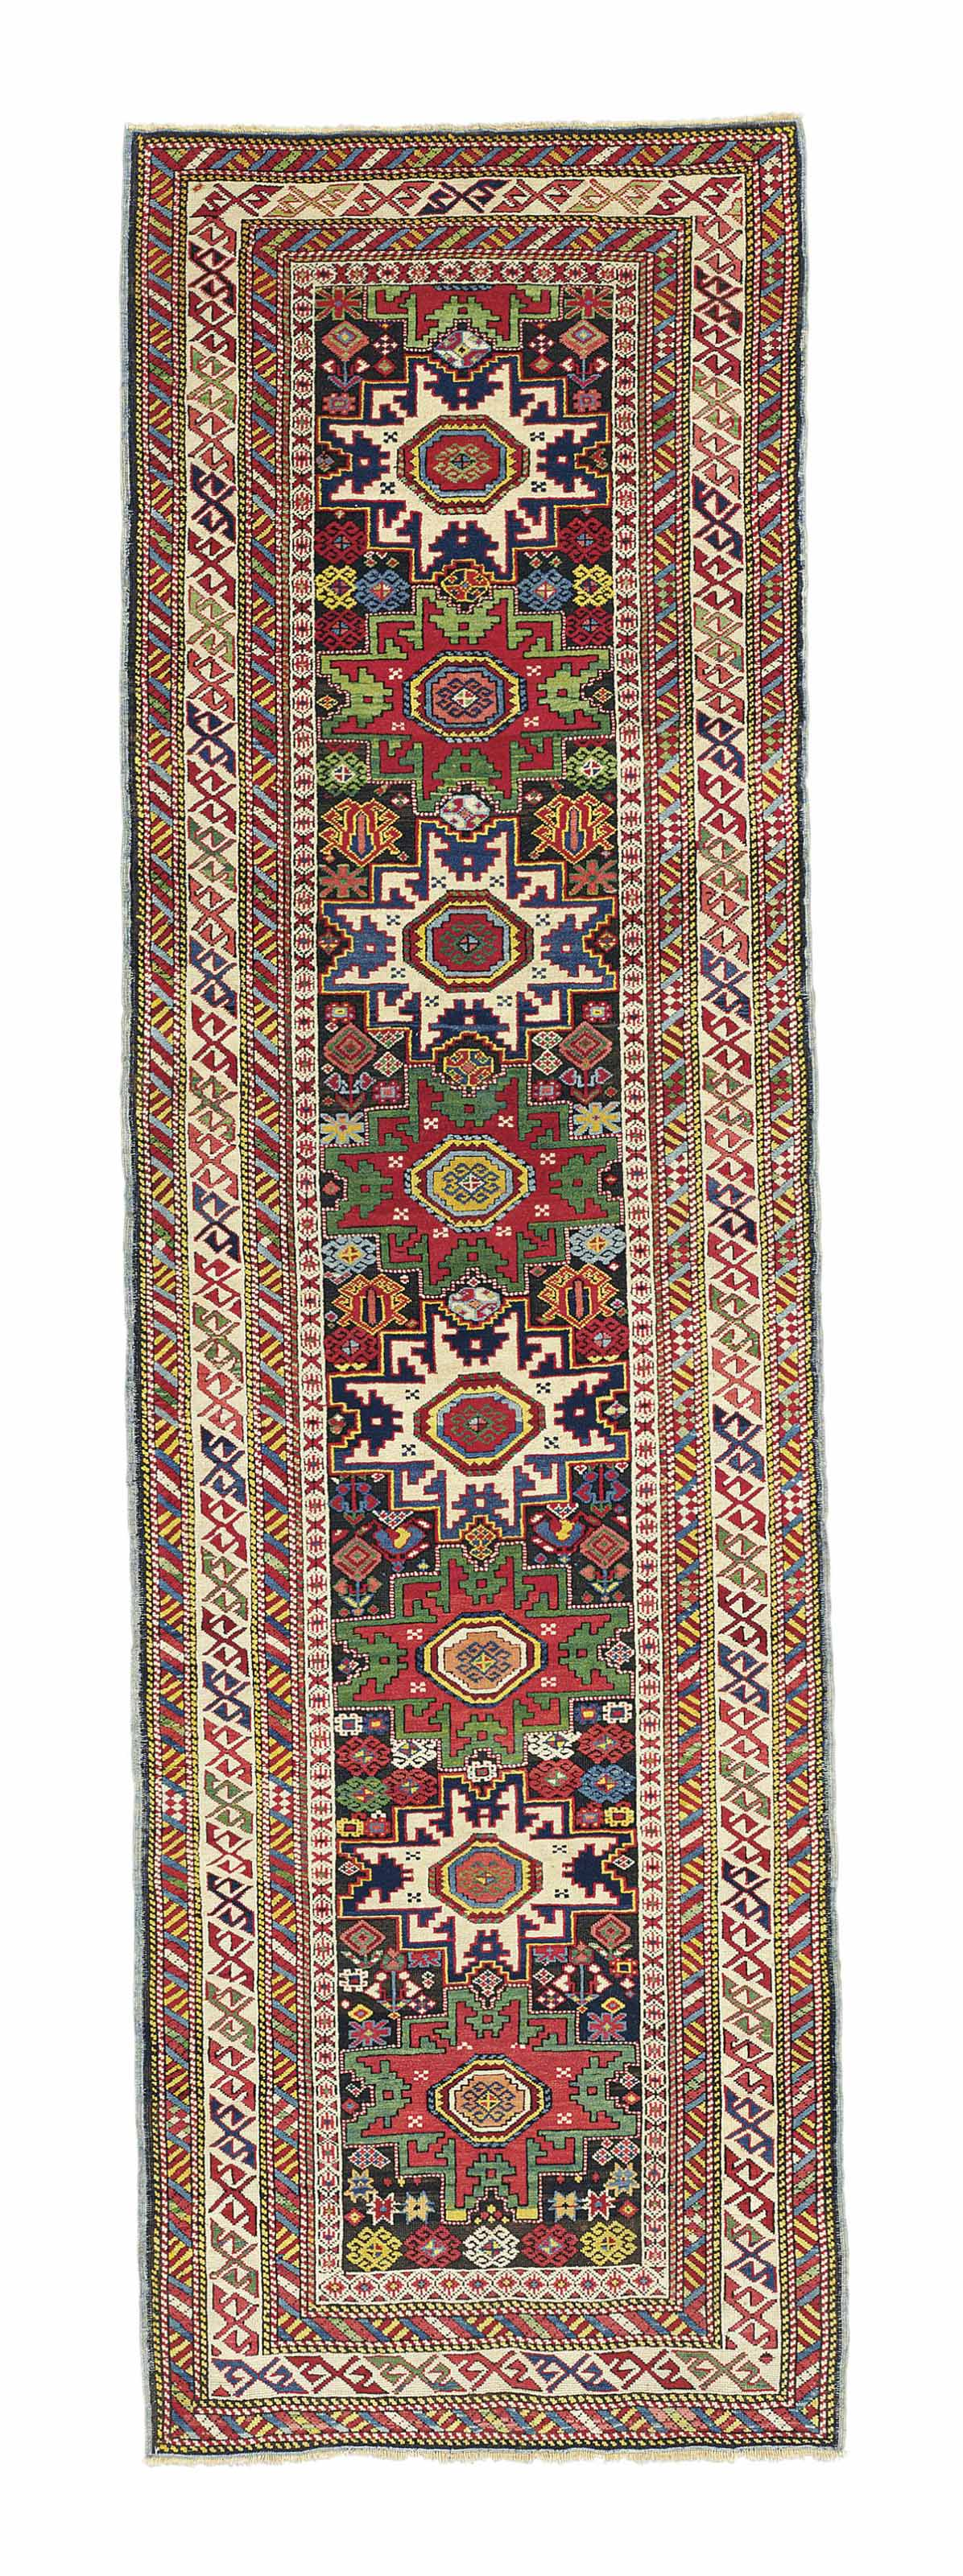 Auktion   Oriental Rugs and Carpets am 21.21.21   LotSearch